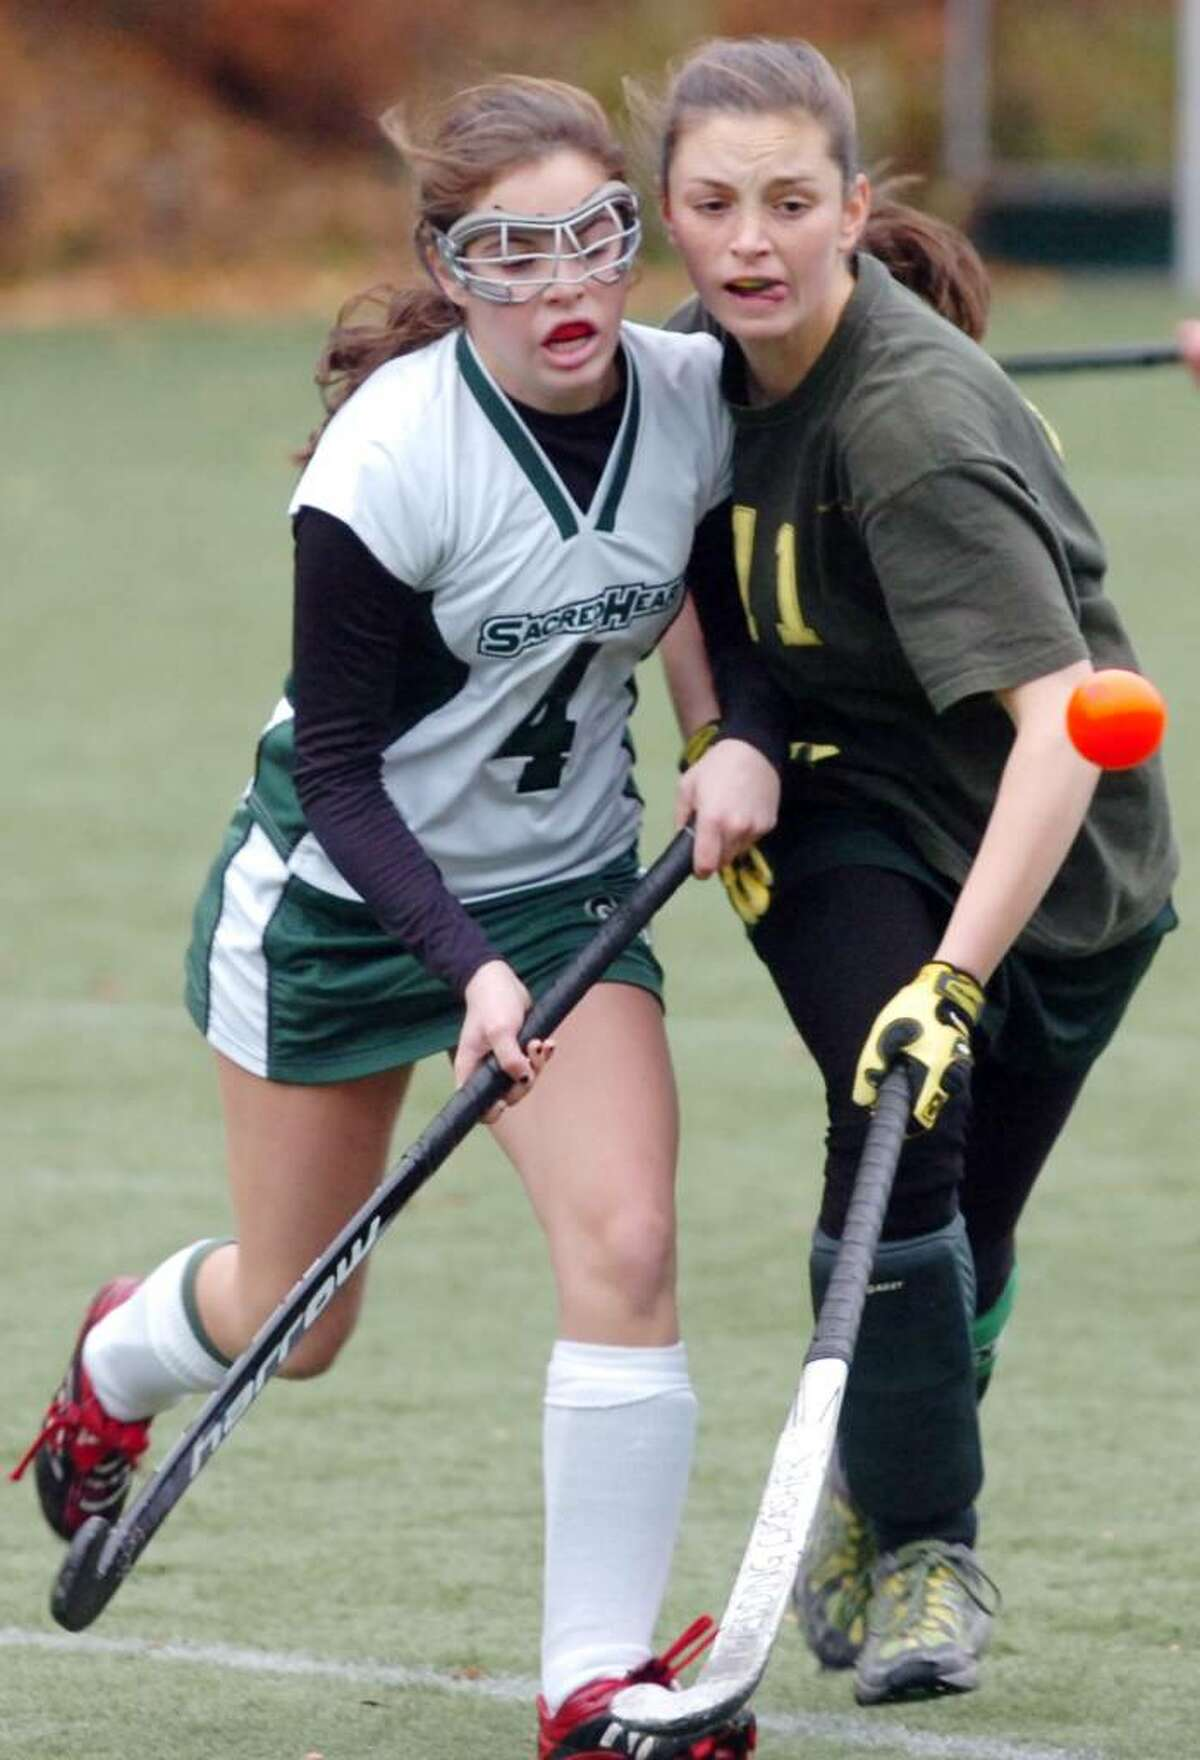 Sacred Heart's Anne Verrochi fights GA's Sarah Canning for the ball as Greenwich Academy hosts the Convent of the Sacred Heart in the FAA Field Hockey Finals. GA won 4-2.